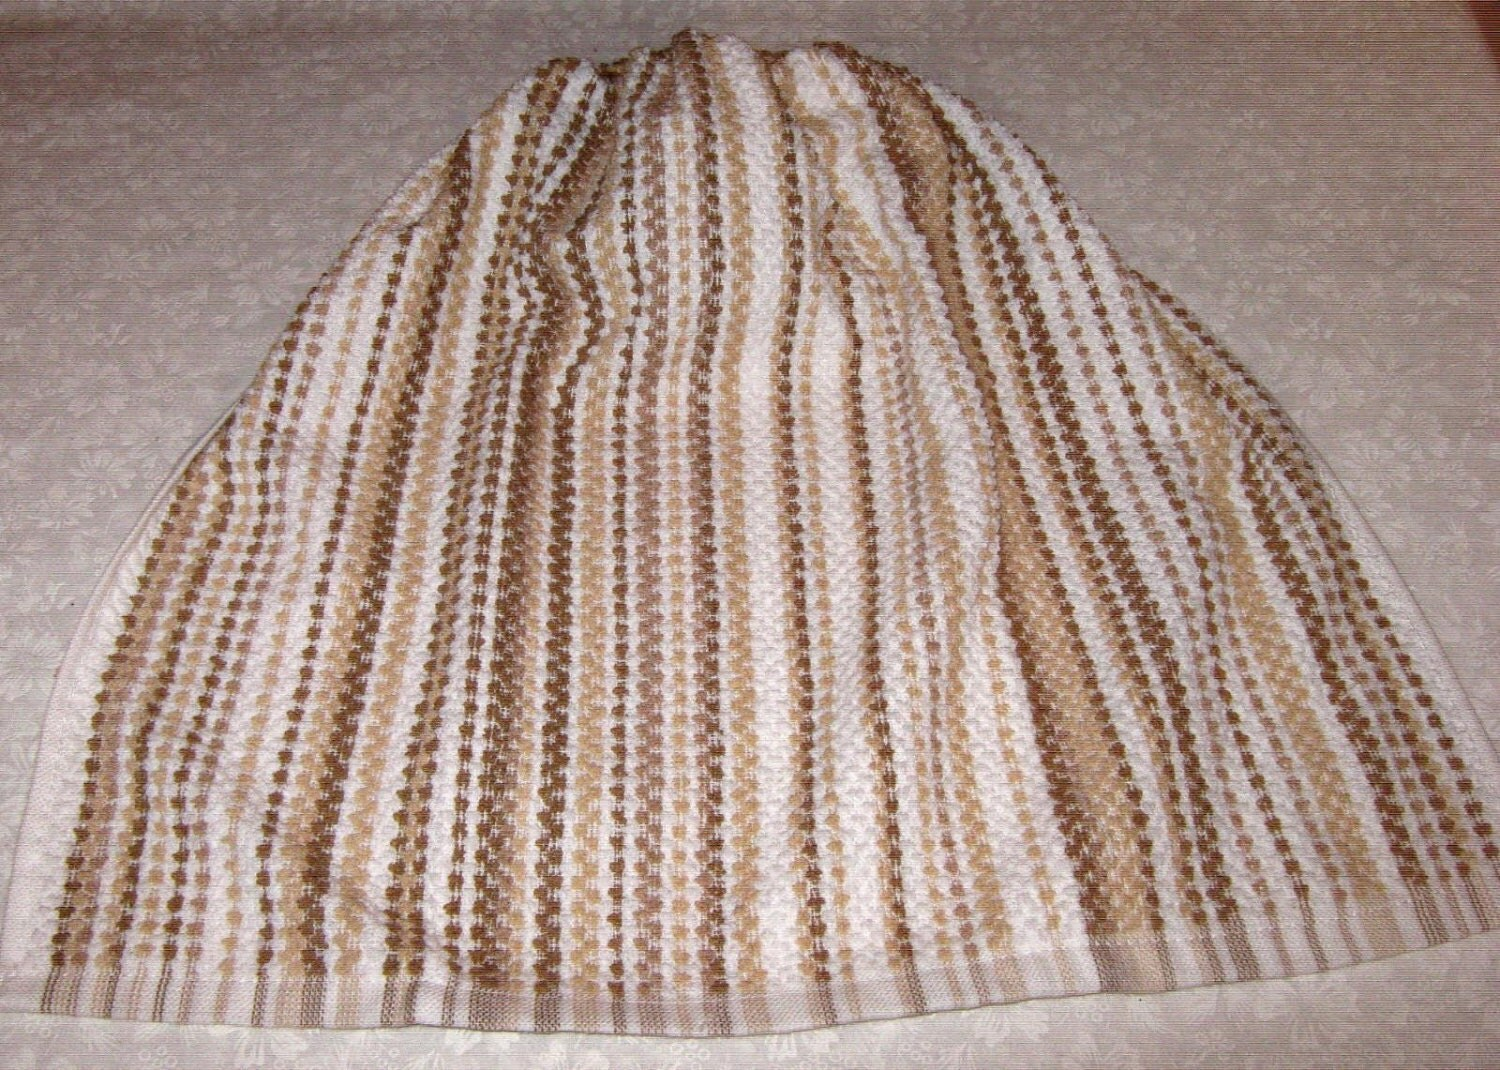 Crochet Kitchen Towel : Crochet Kitchen Hanging Towel white w/ tan and brown stripes